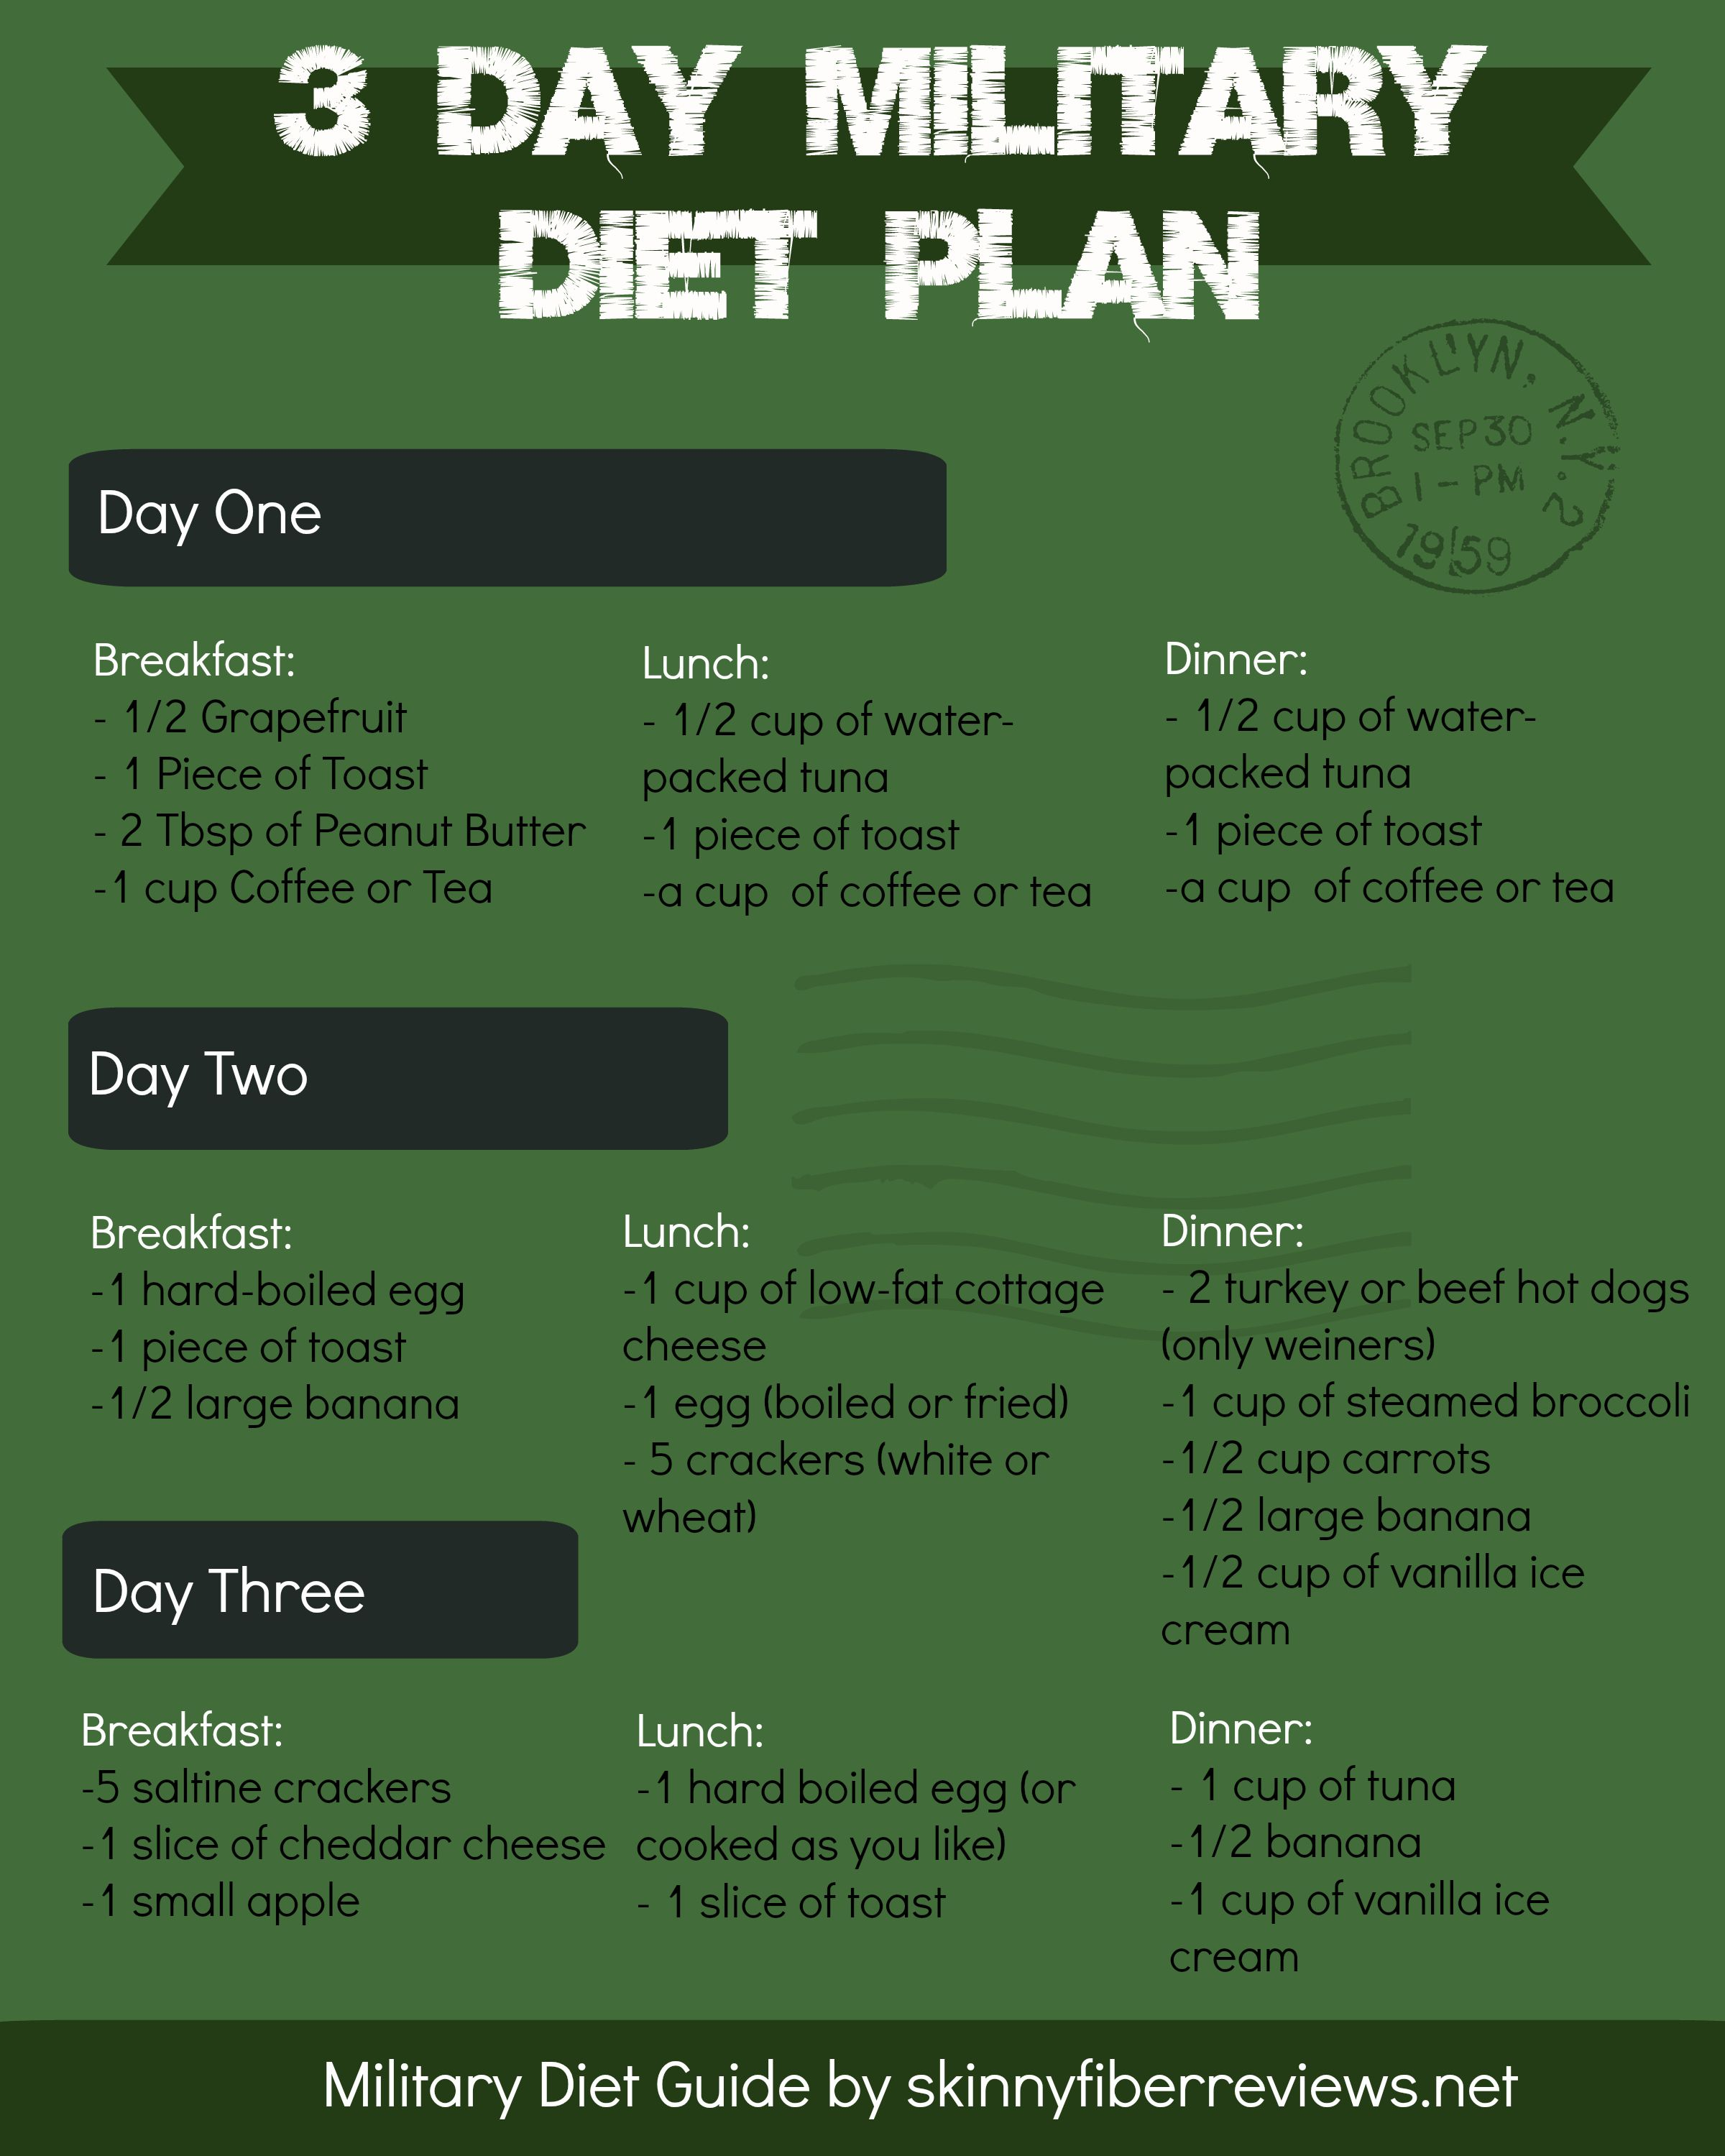 military diet menu 3 day diet plan this is a great printable to help you stay on track on the military diet and have an outline of what you need for